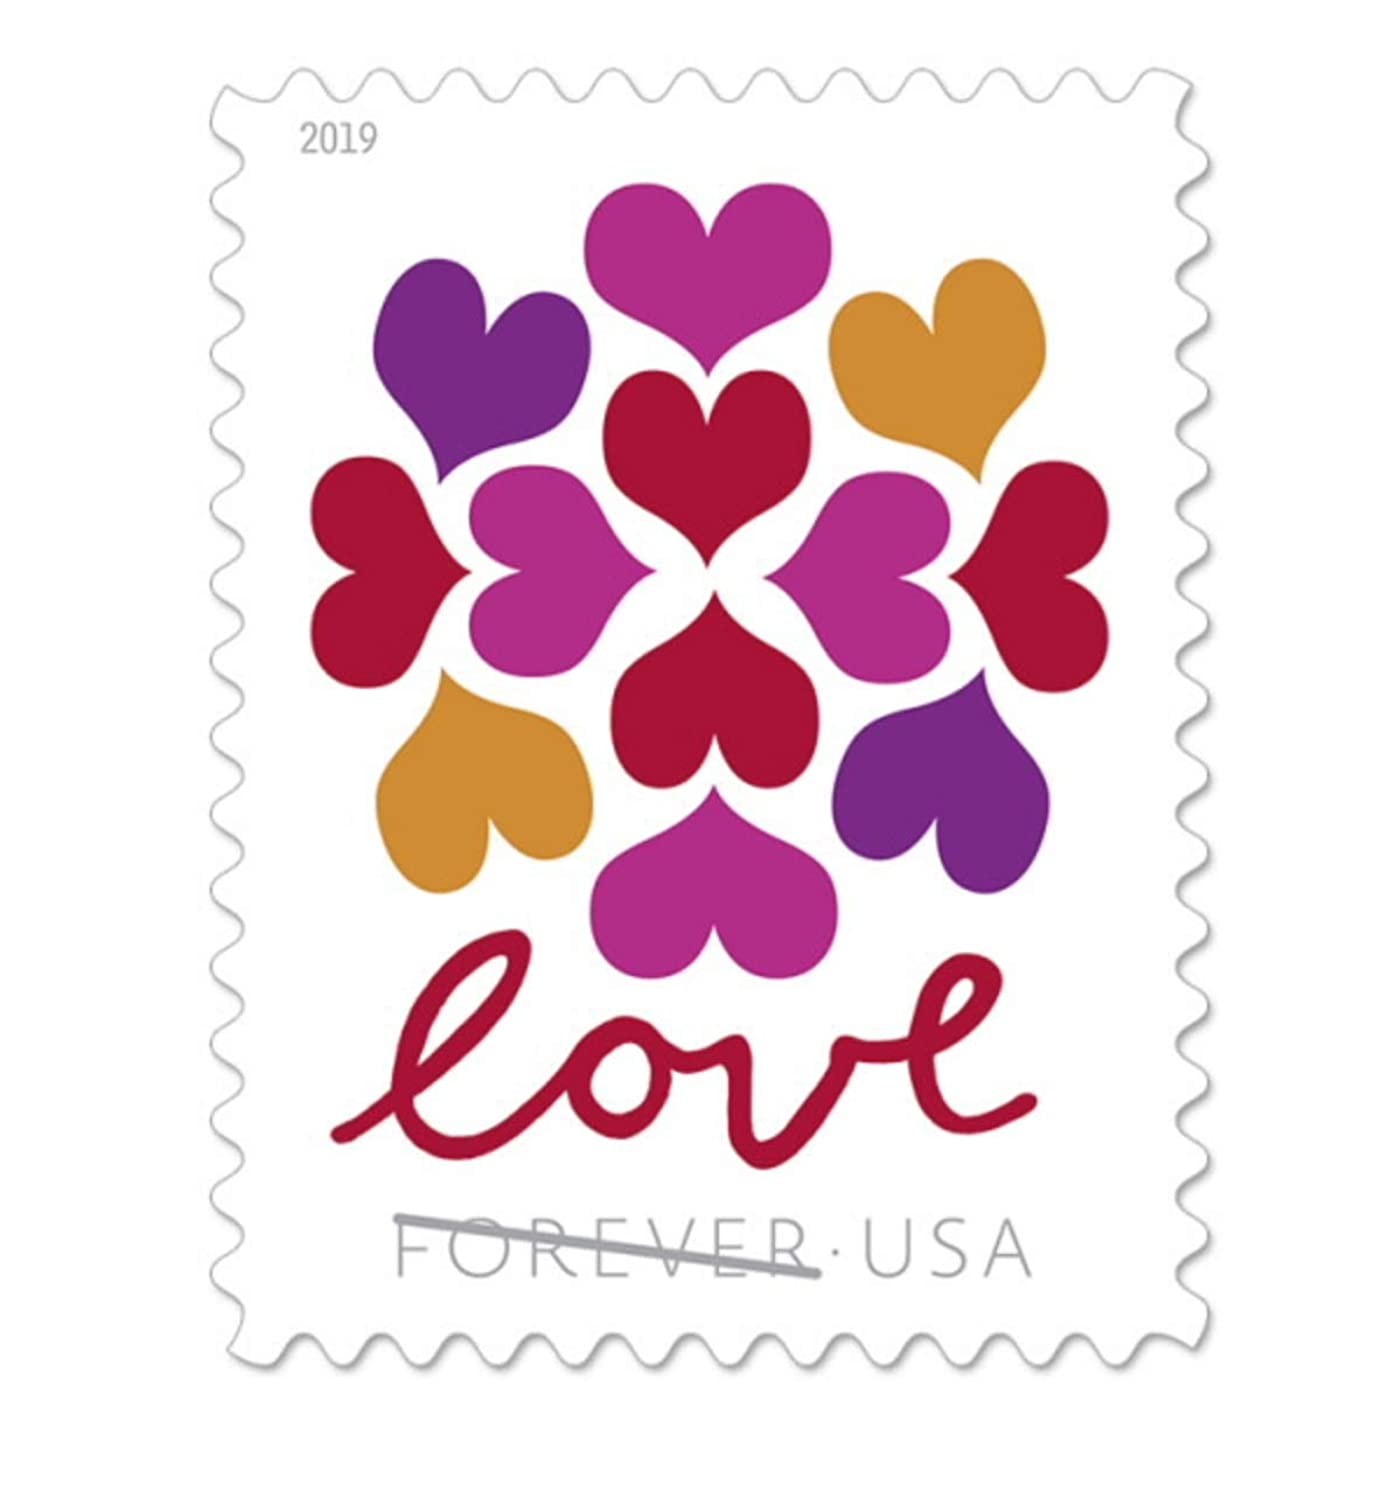 USPS Hearts Blossom Love Forever Stamps 2019 (2 Sheets, 40 Stamps)